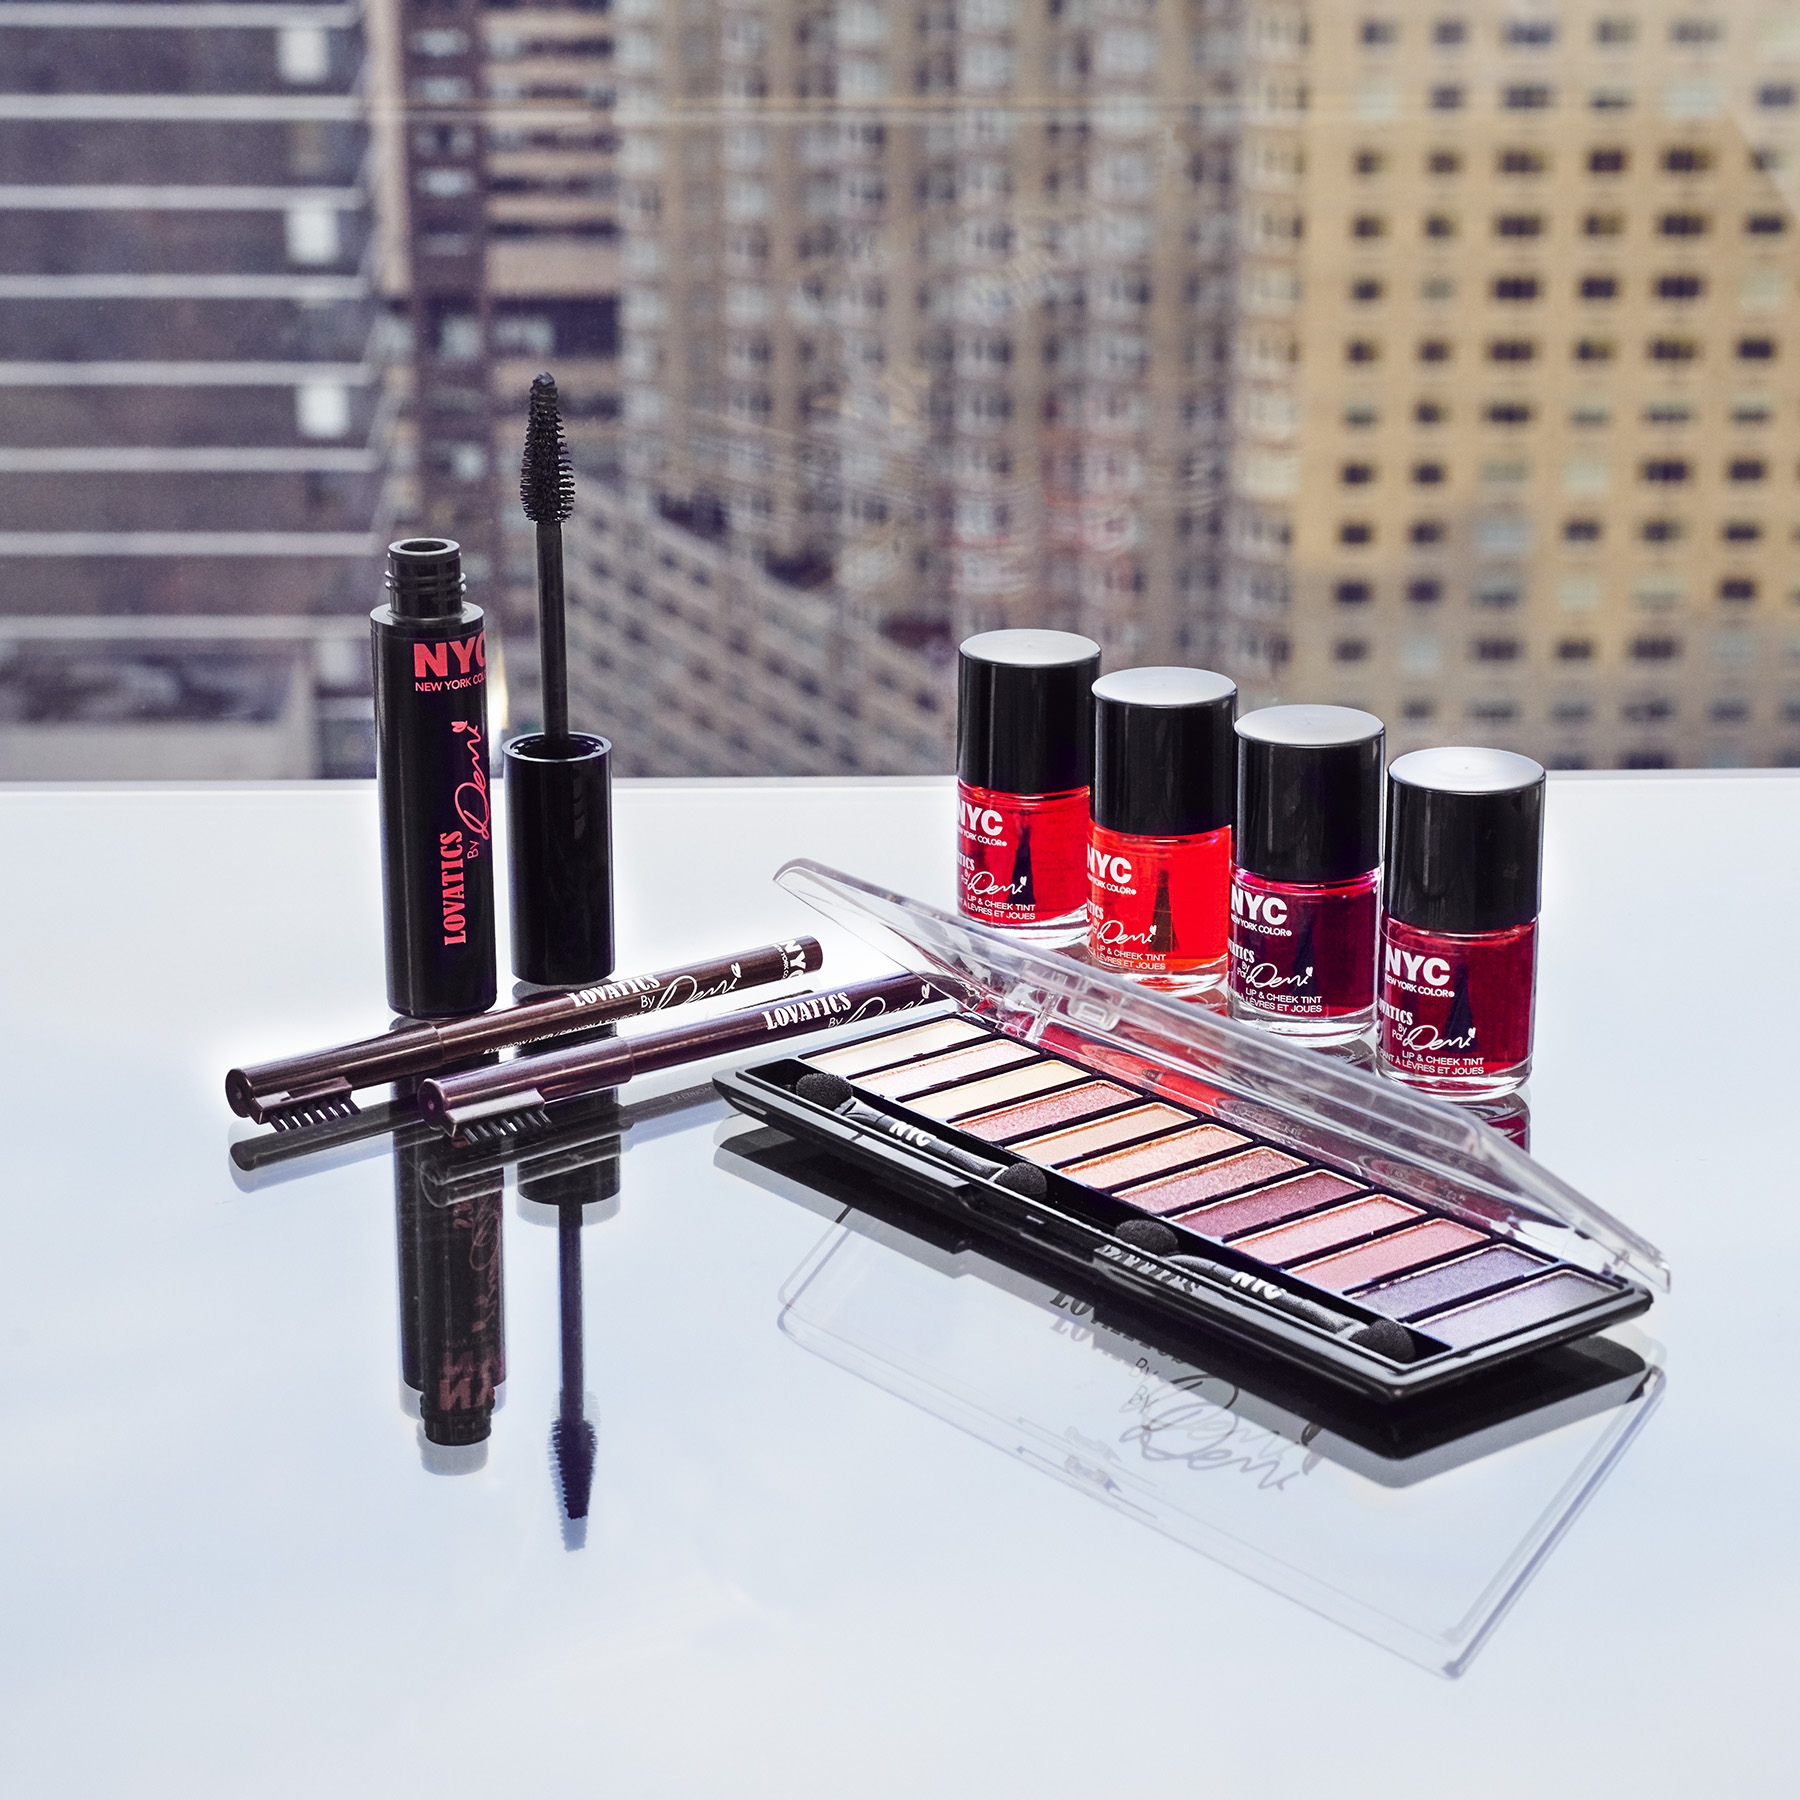 Lovatics by Demi Collection from NYC New York Color